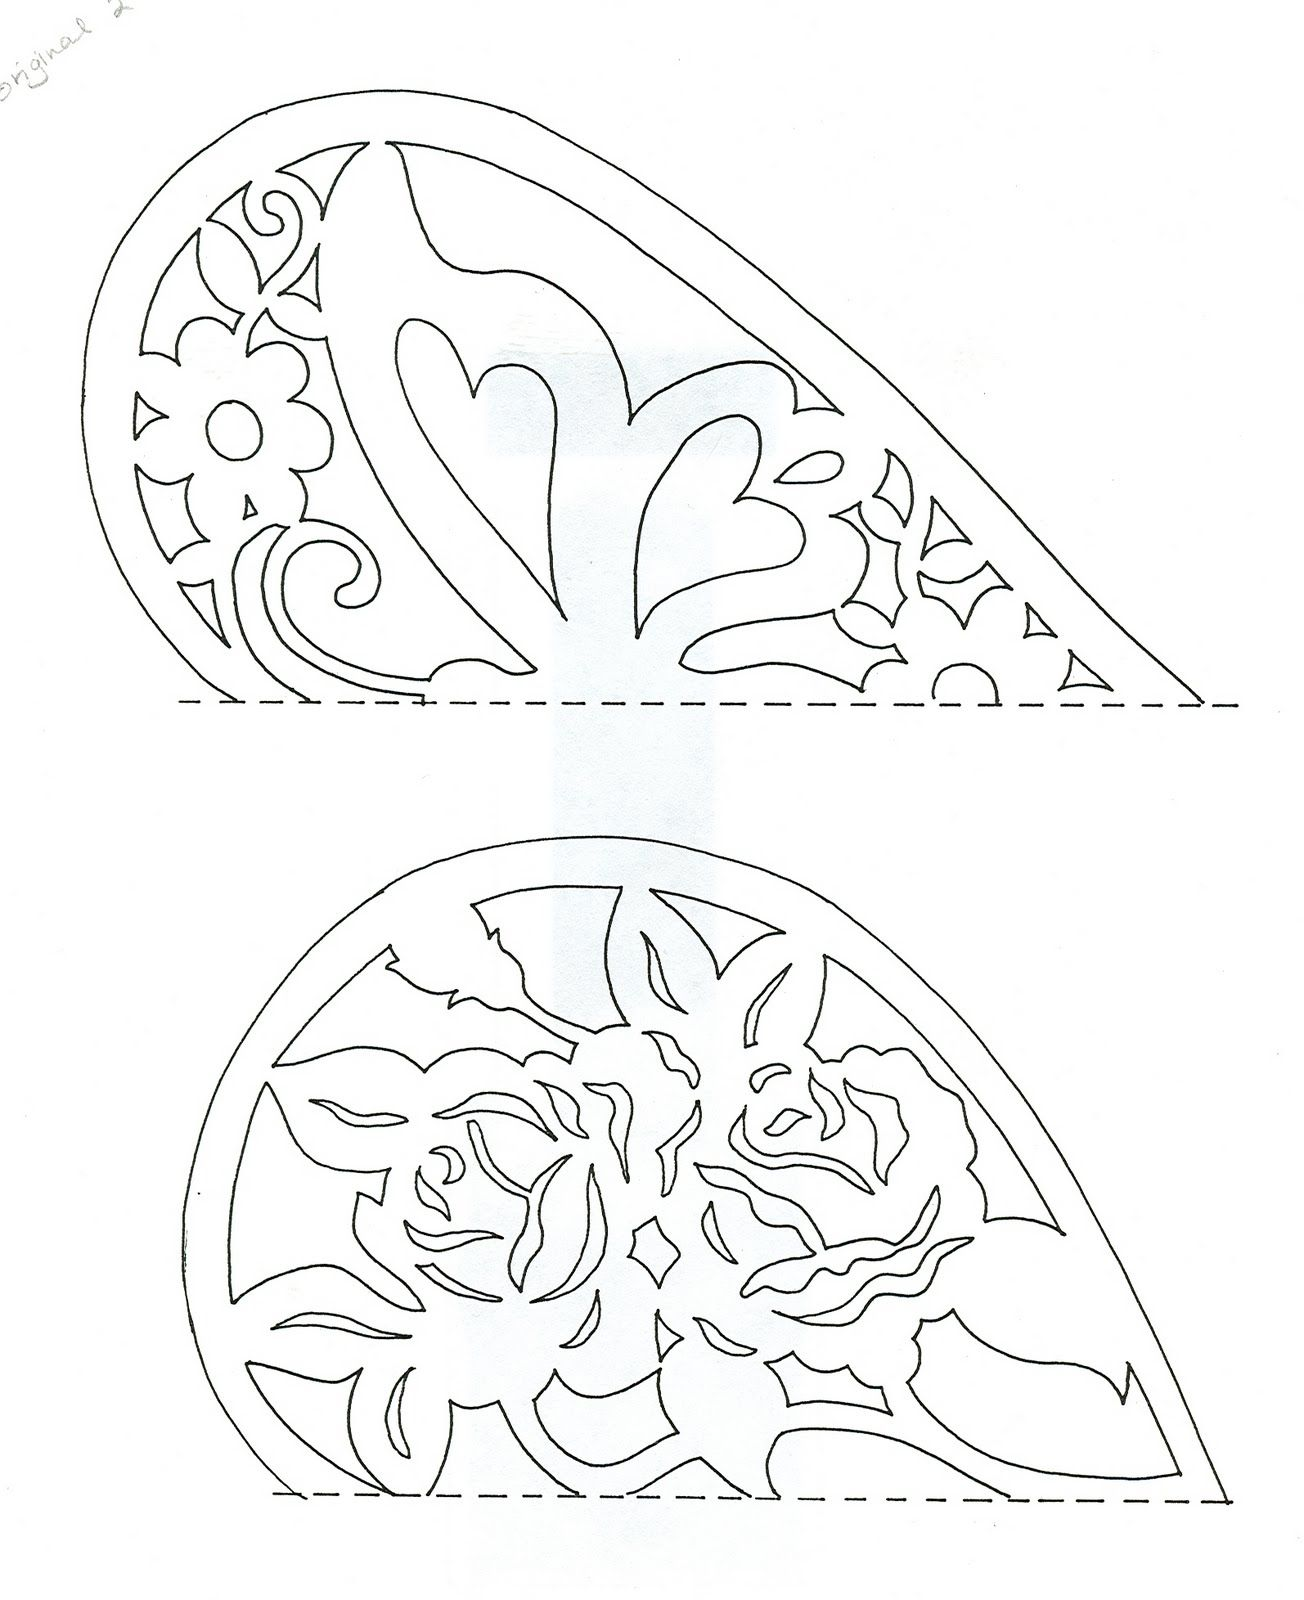 graphic regarding Papel Picado Template Printable named Butterfly middle and flower middle Routine Scherensnitte extremely